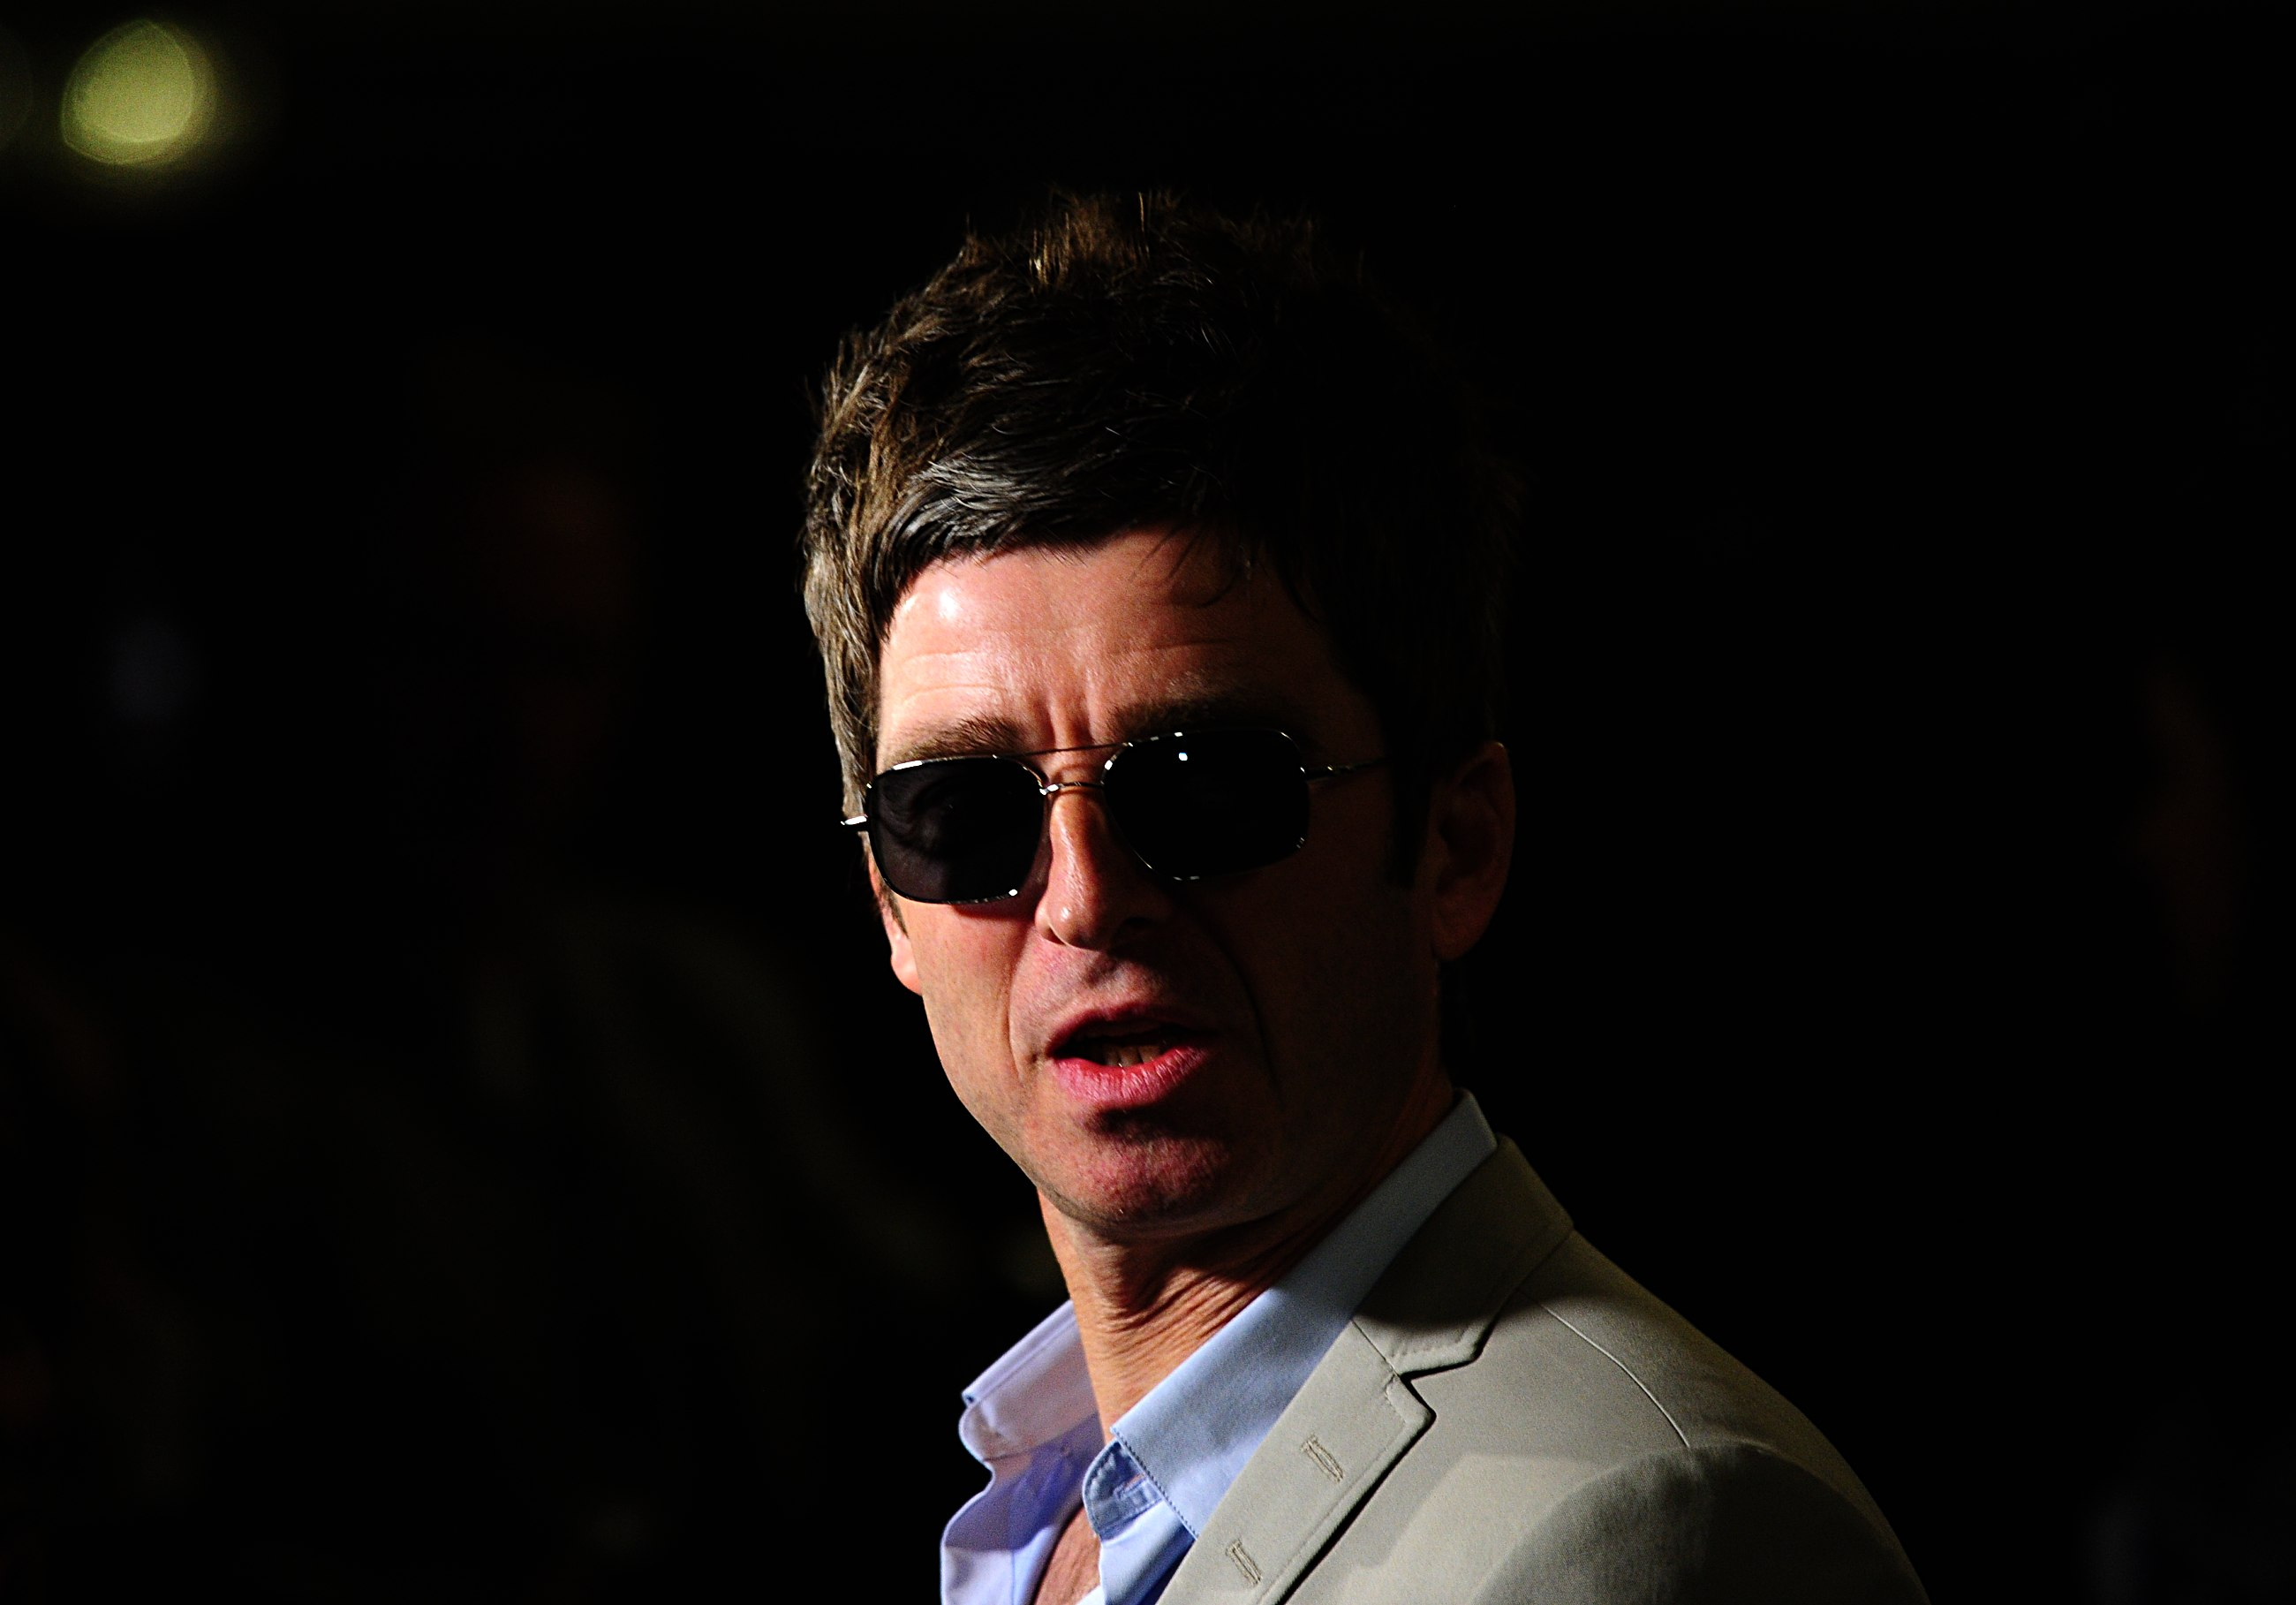 The Ivor Novello Awards - London. Noel Gallagher at the 2013 Ivor Novello awards held at the Grosvenor House Hotel, London UR